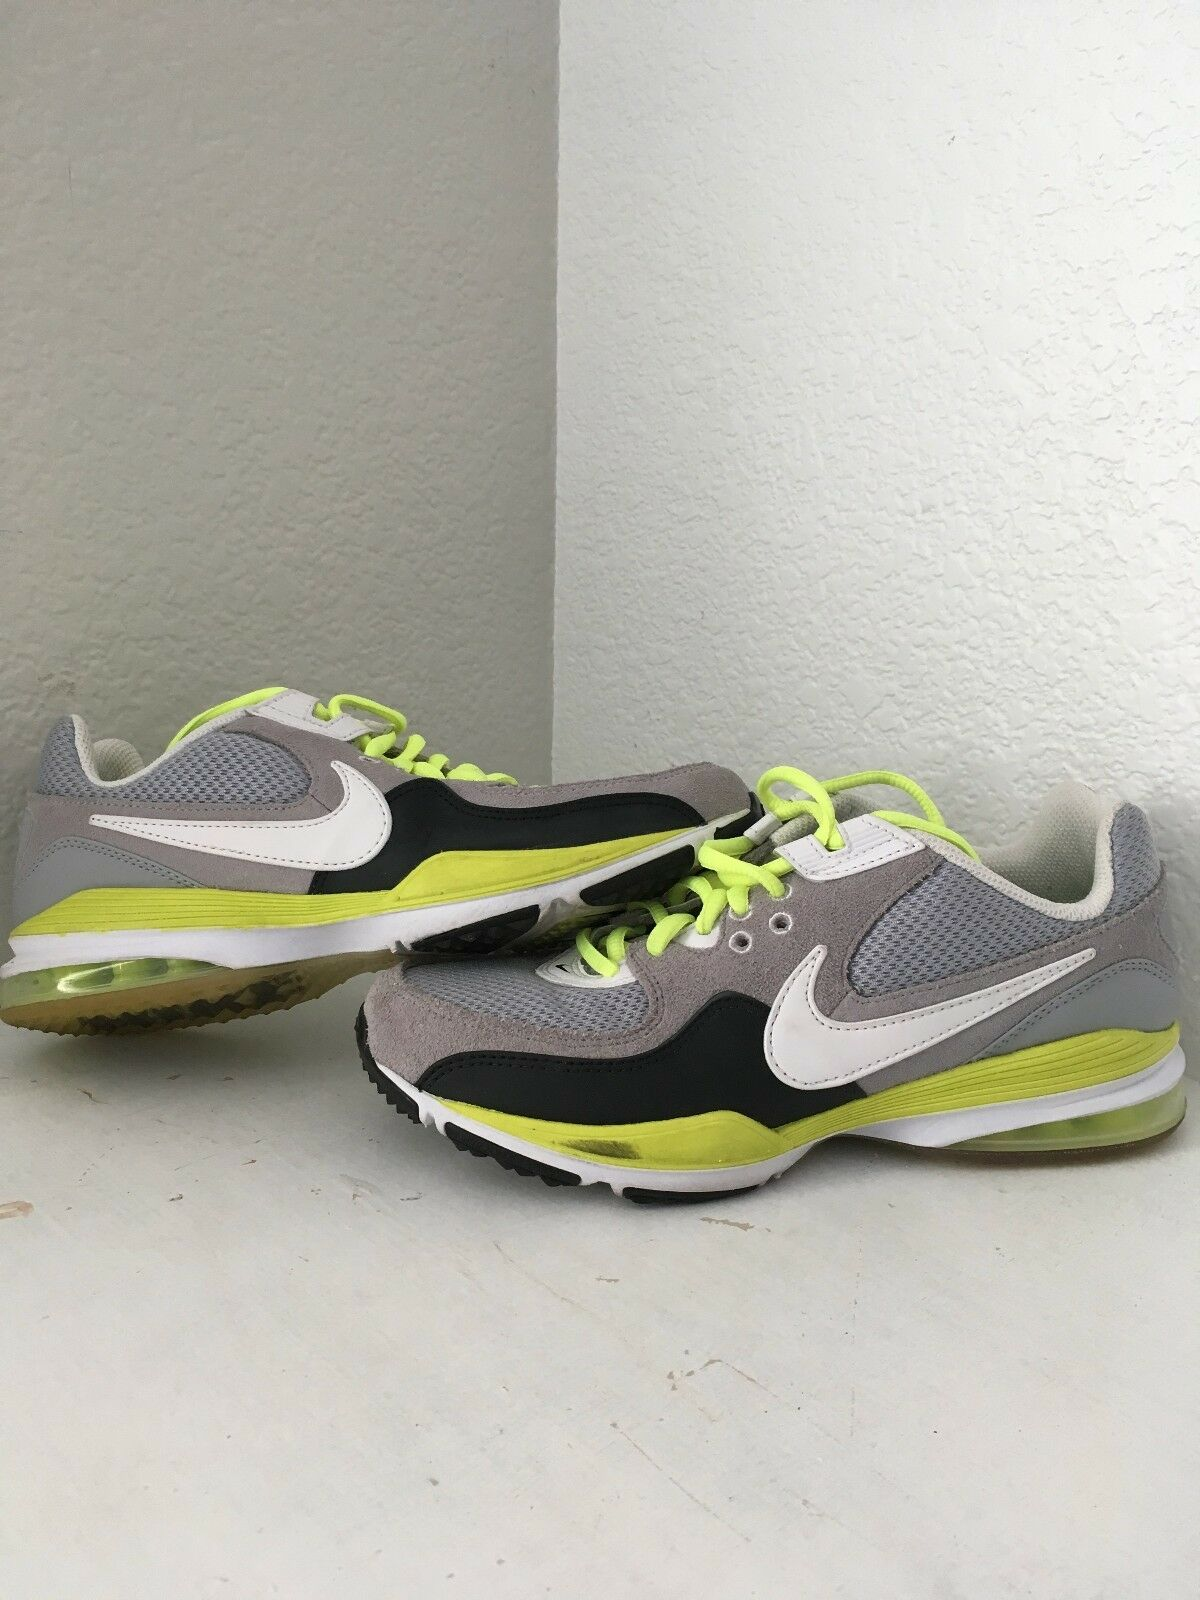 Nike Women's Air max team ST. Grey/ white/ victory 6.5 green running shoes size 6.5 victory ba82ac